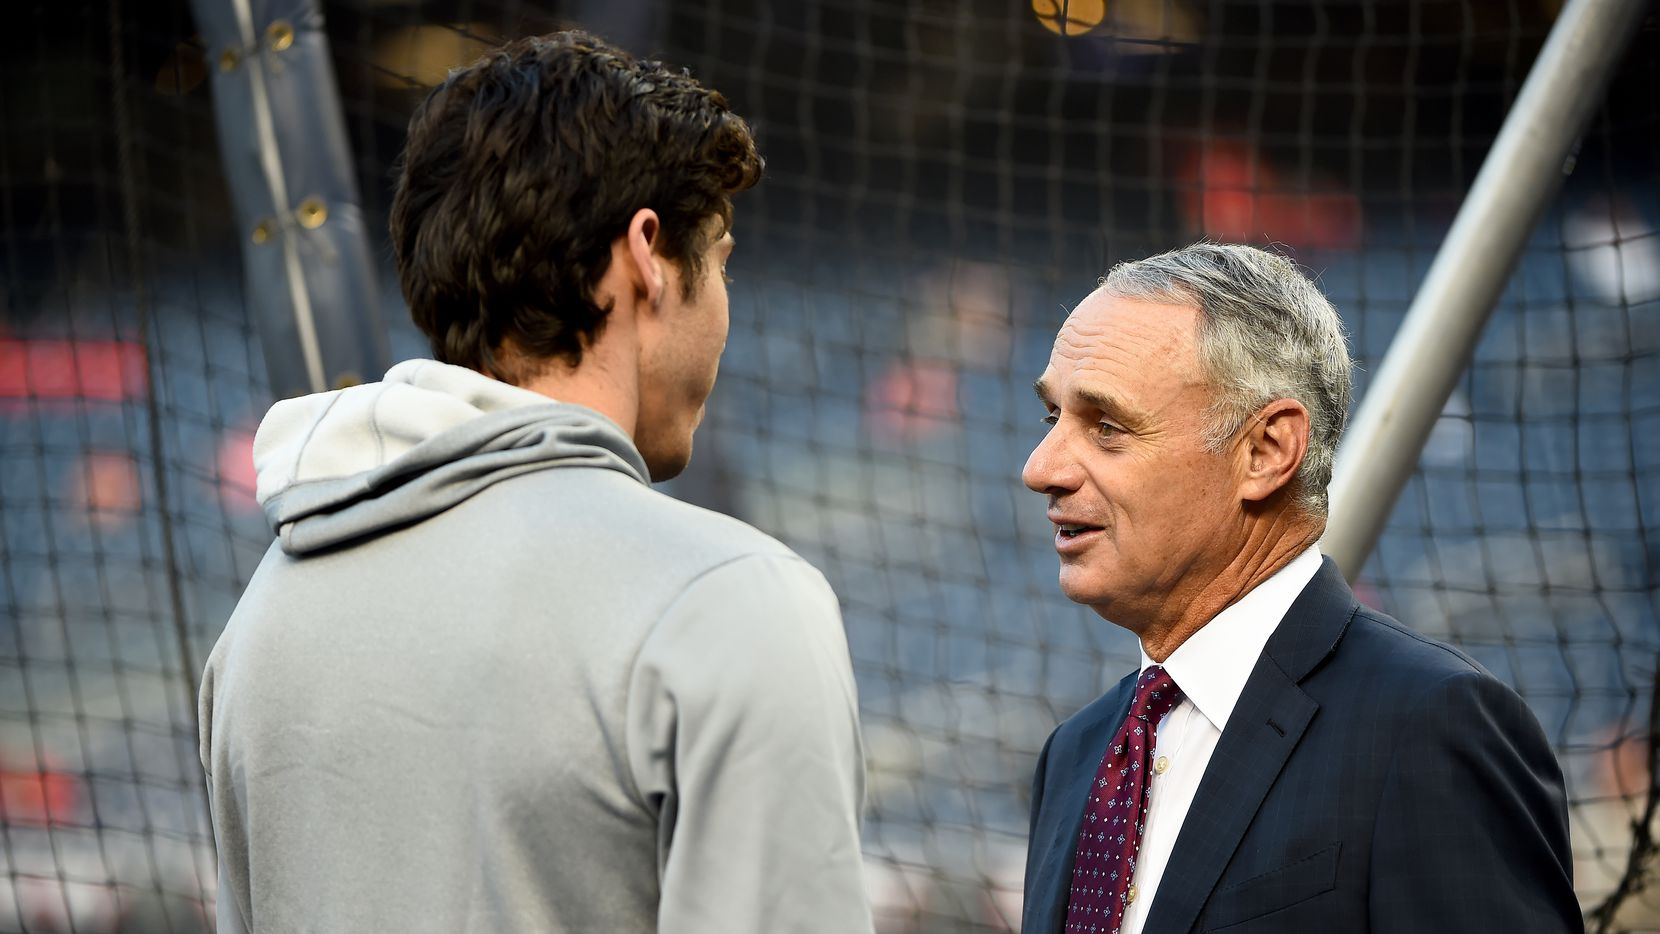 WASHINGTON, DC - OCTOBER 01: (L-R) Christian Yelich #22 of the Milwaukee Brewers talks with Rob Manfred, Commissioner of the Major League Baseball during batting practice prior to the National League Wild Card game against the Washington Nationals at Nationals Park on October 01, 2019 in Washington, DC.